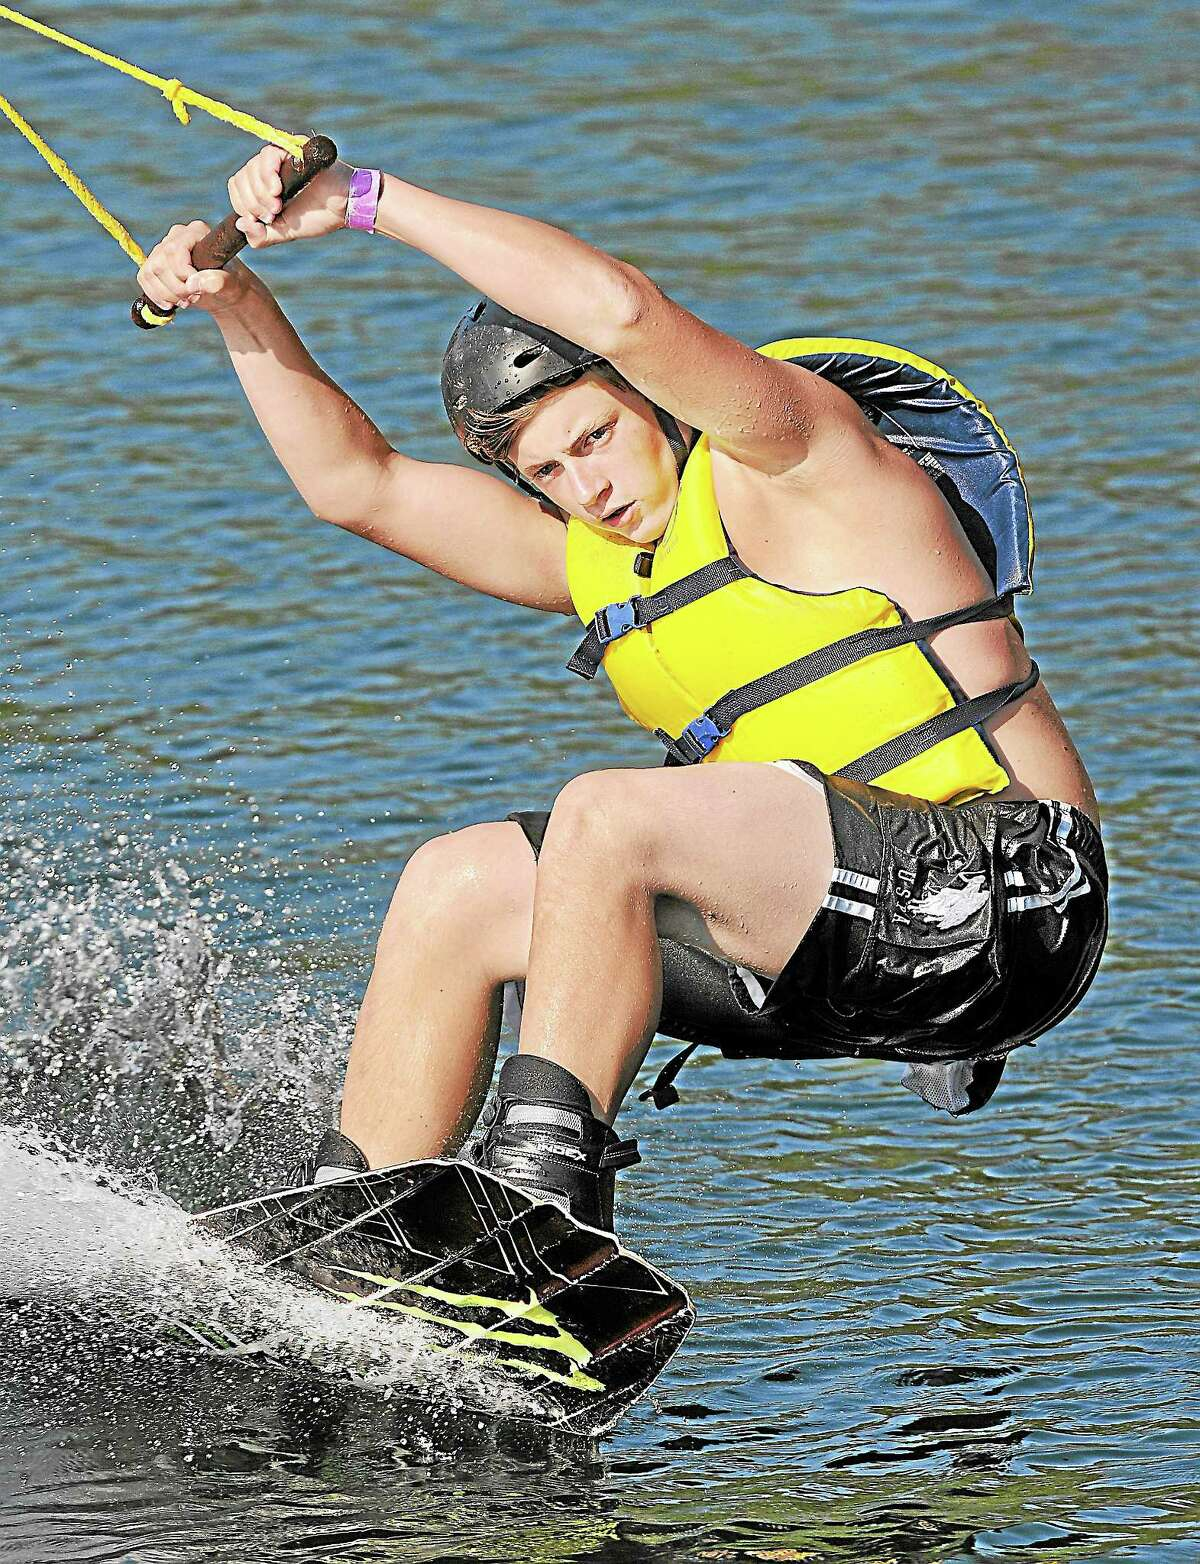 Jordan Ballard, of Suffield, wakeboards at Brownstone Exploration and Discovery Park.